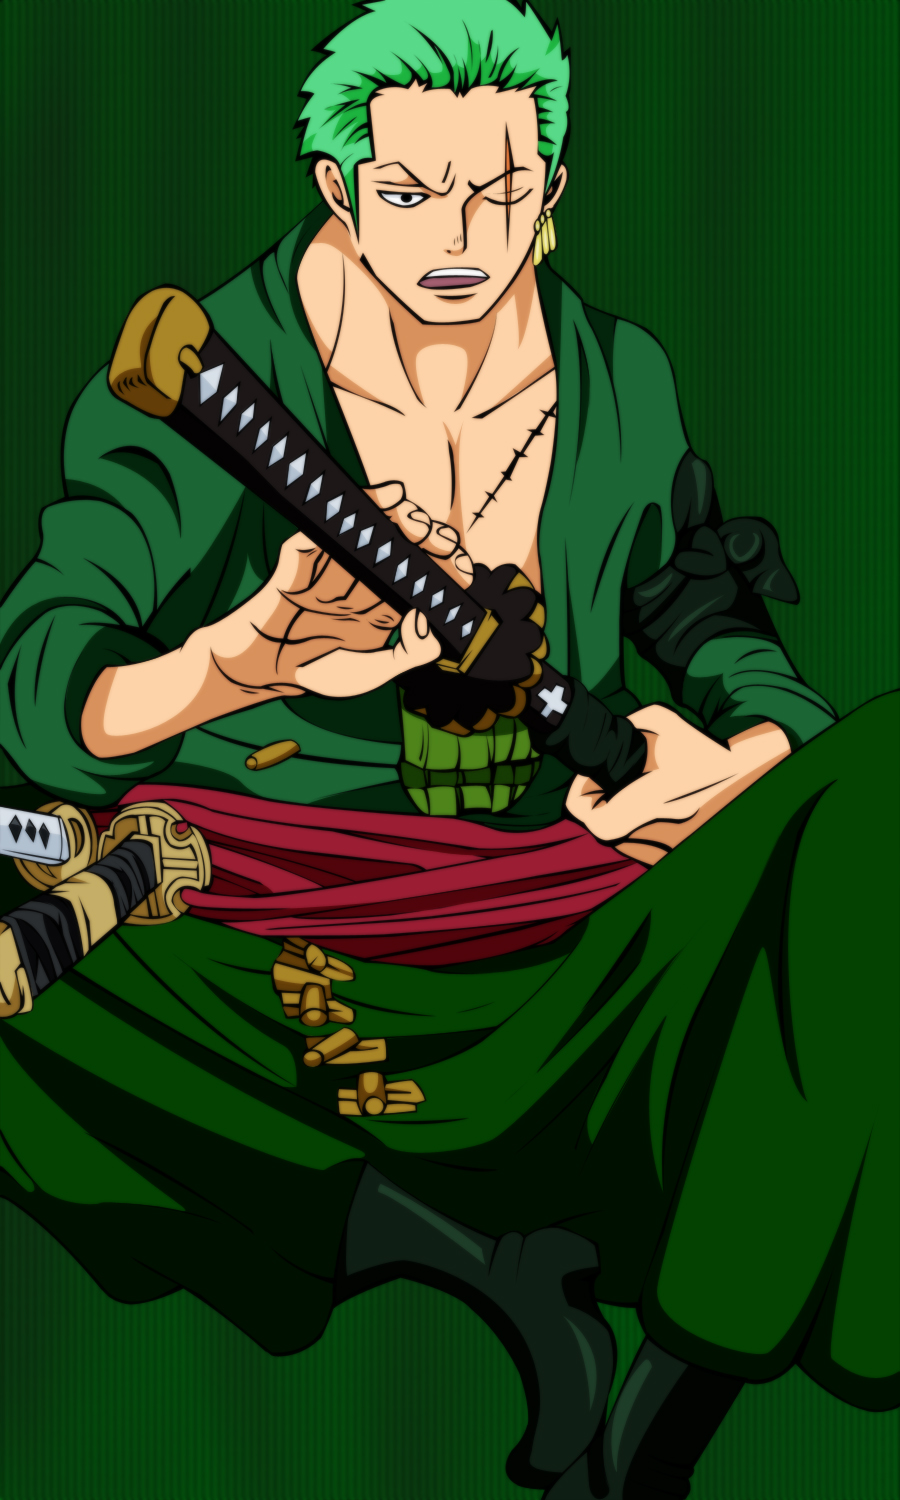 Zoro after 2 years by X-Ray99 on DeviantArt